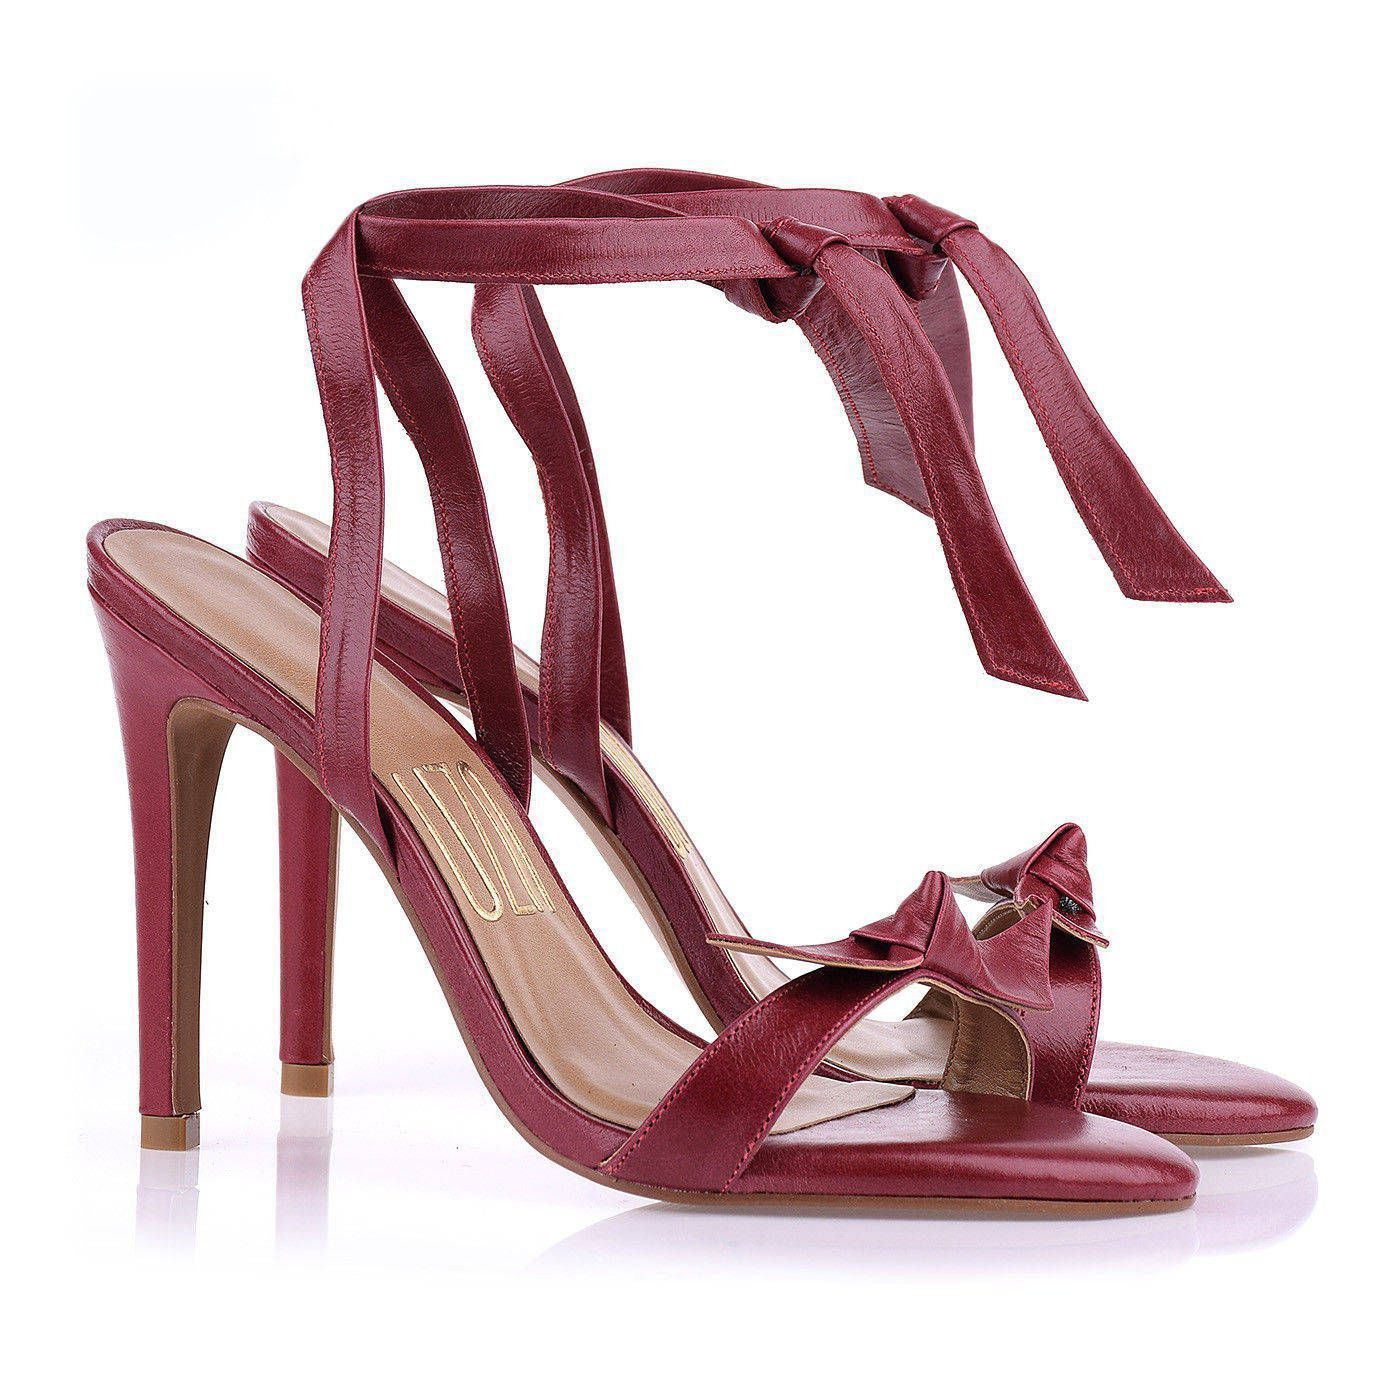 Sandália Salto Alto Lace Up Prada Wine